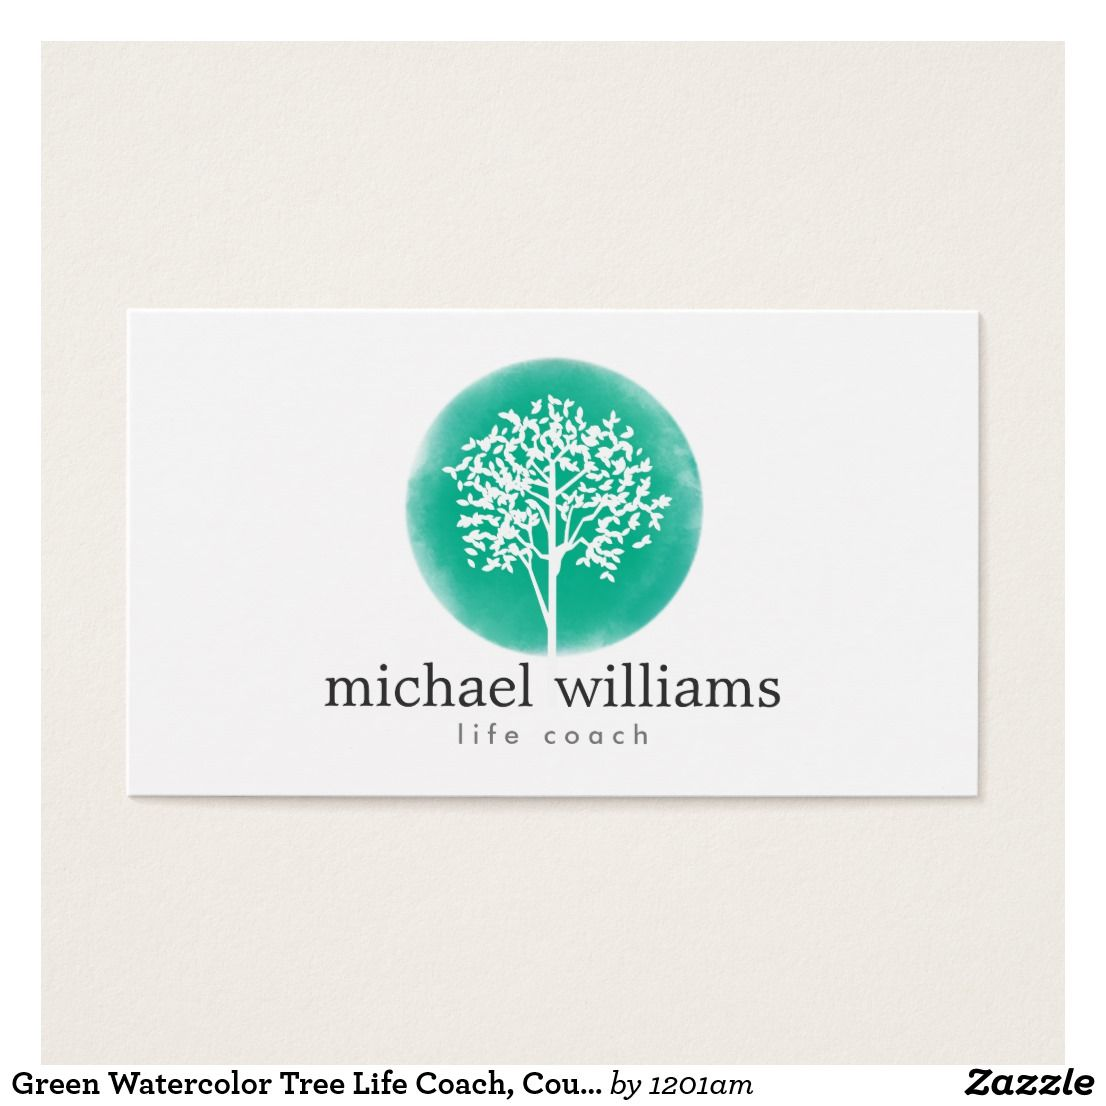 Green Watercolor Tree Life Coach, Counselors Business Card ...